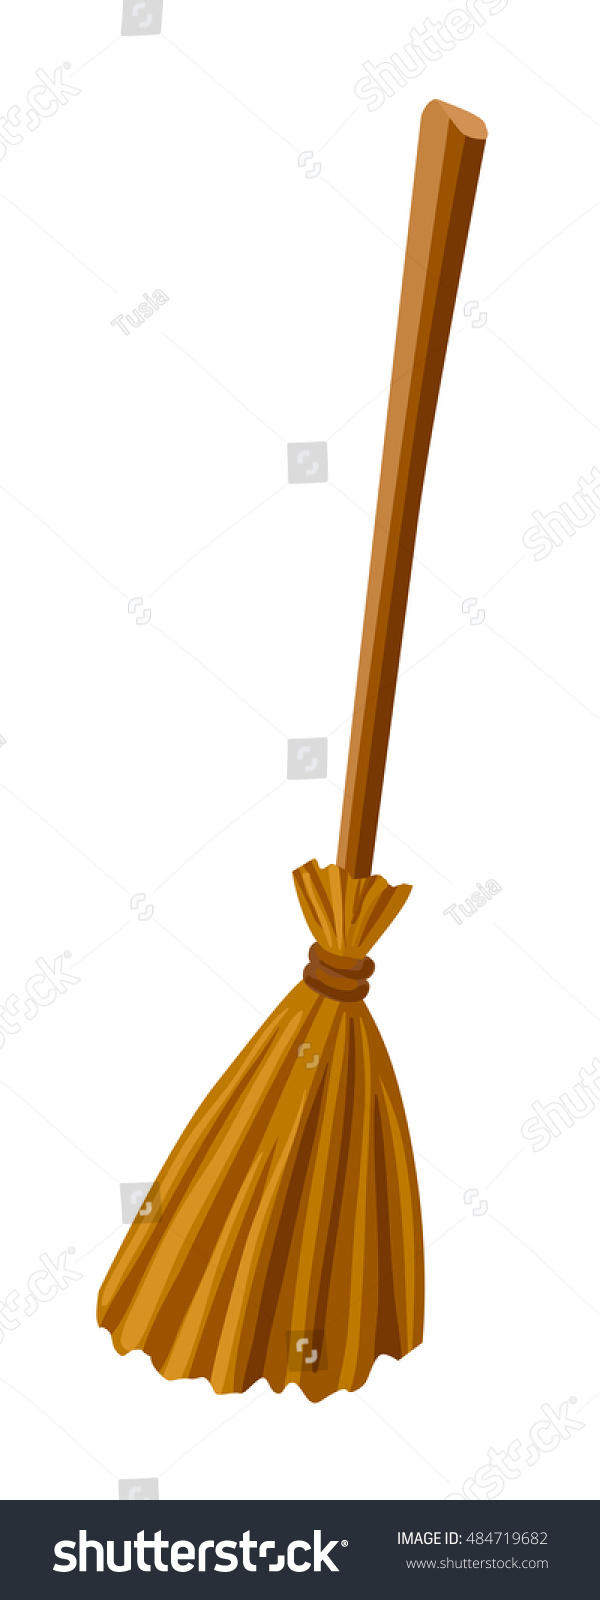 witch broomstick vector illustration broom isolated on white background halloween accessory object